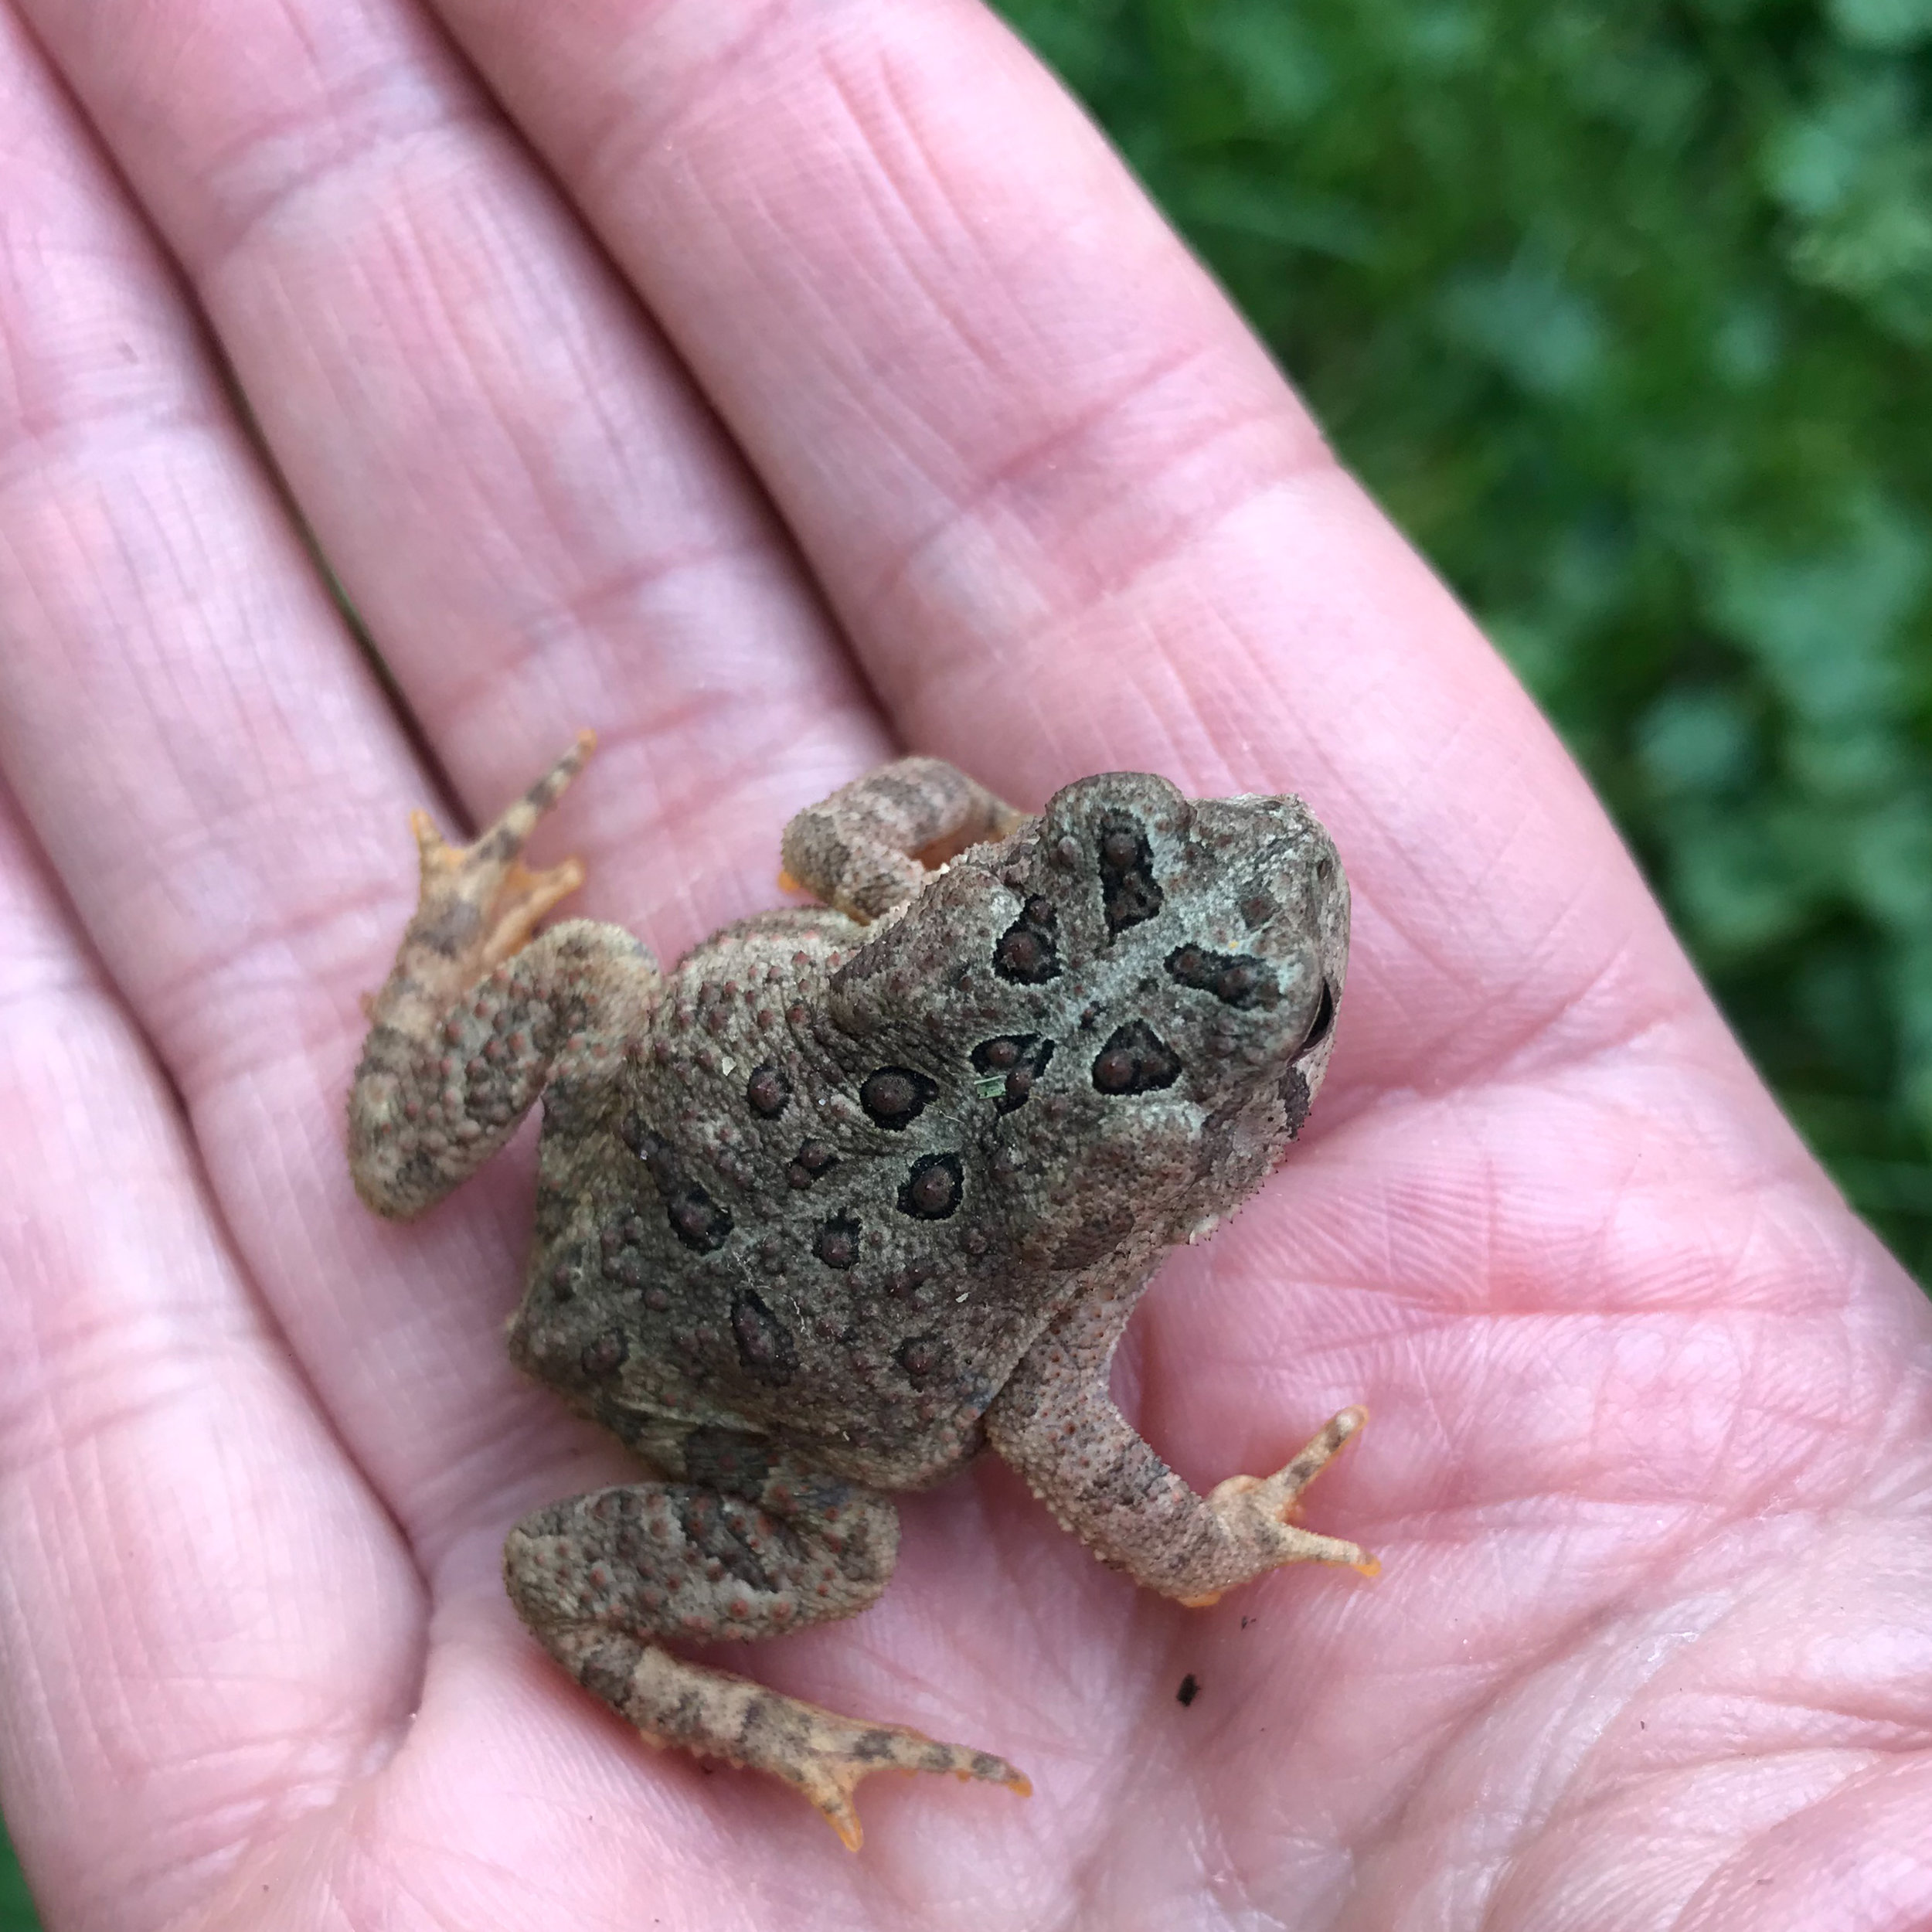 A little toad is a welcome garden visitor